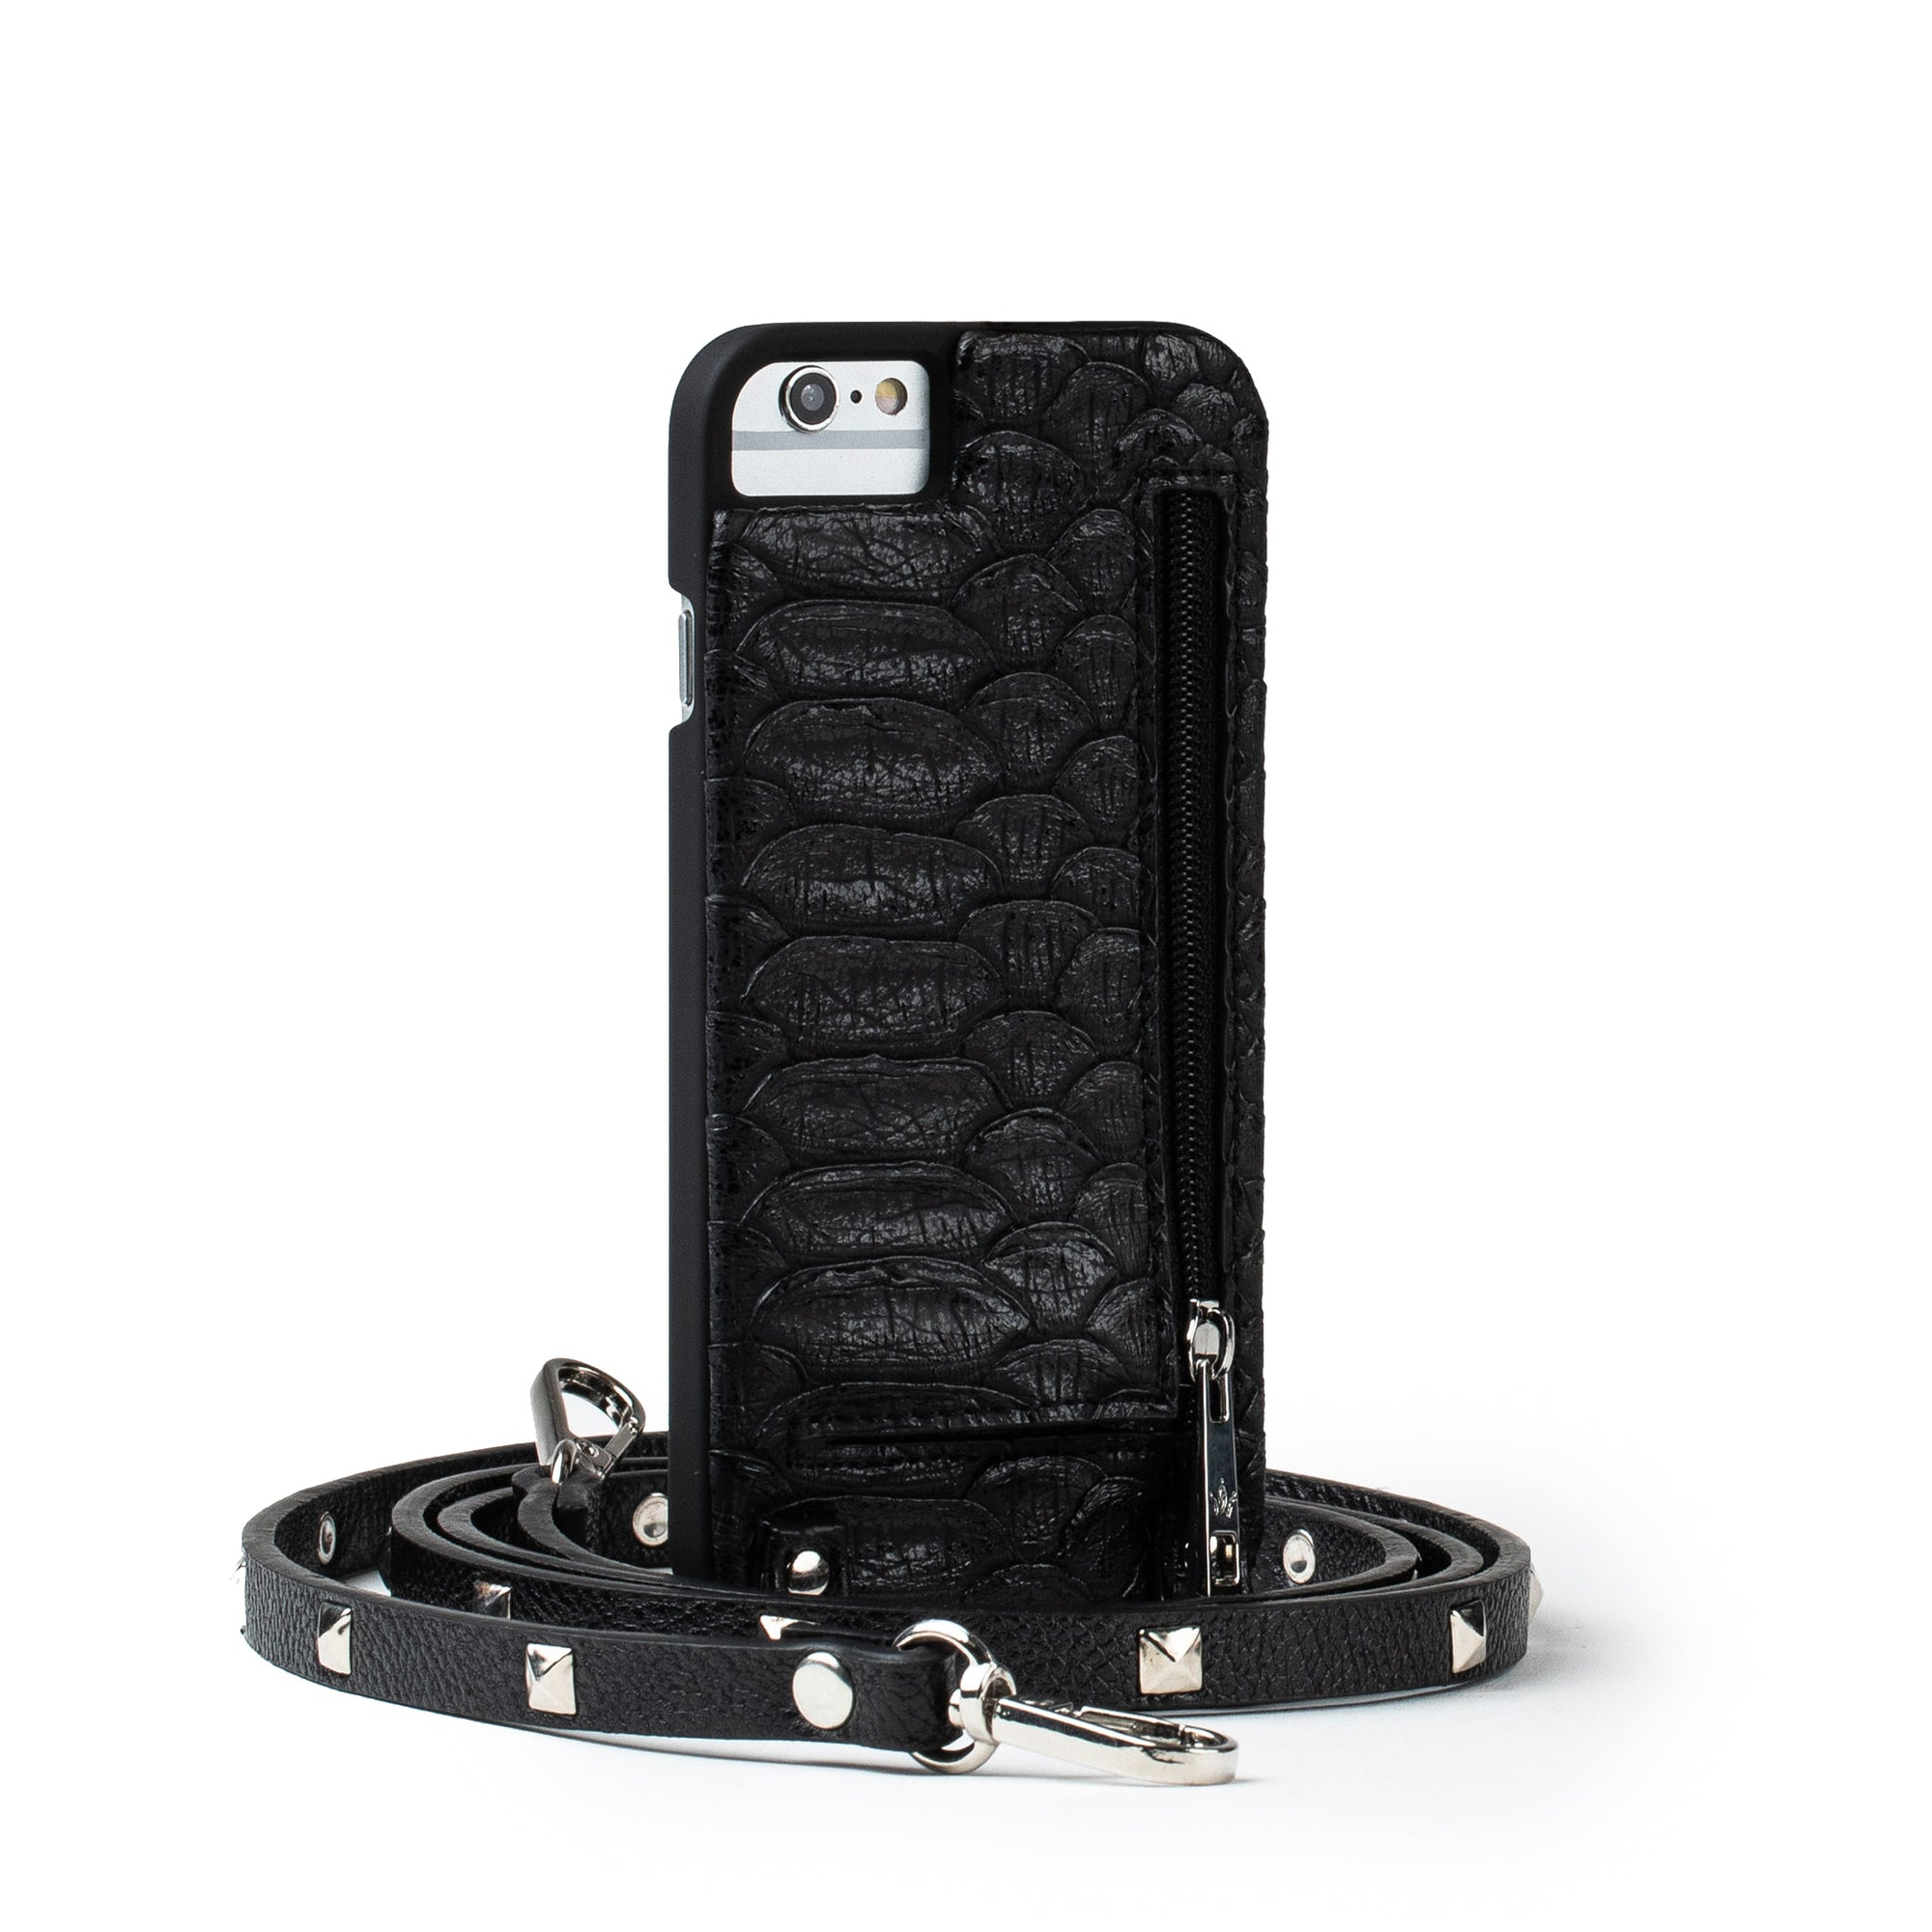 Raine & Vanessa - iPhone Crossbody Case for SE - LIMITED EDITION